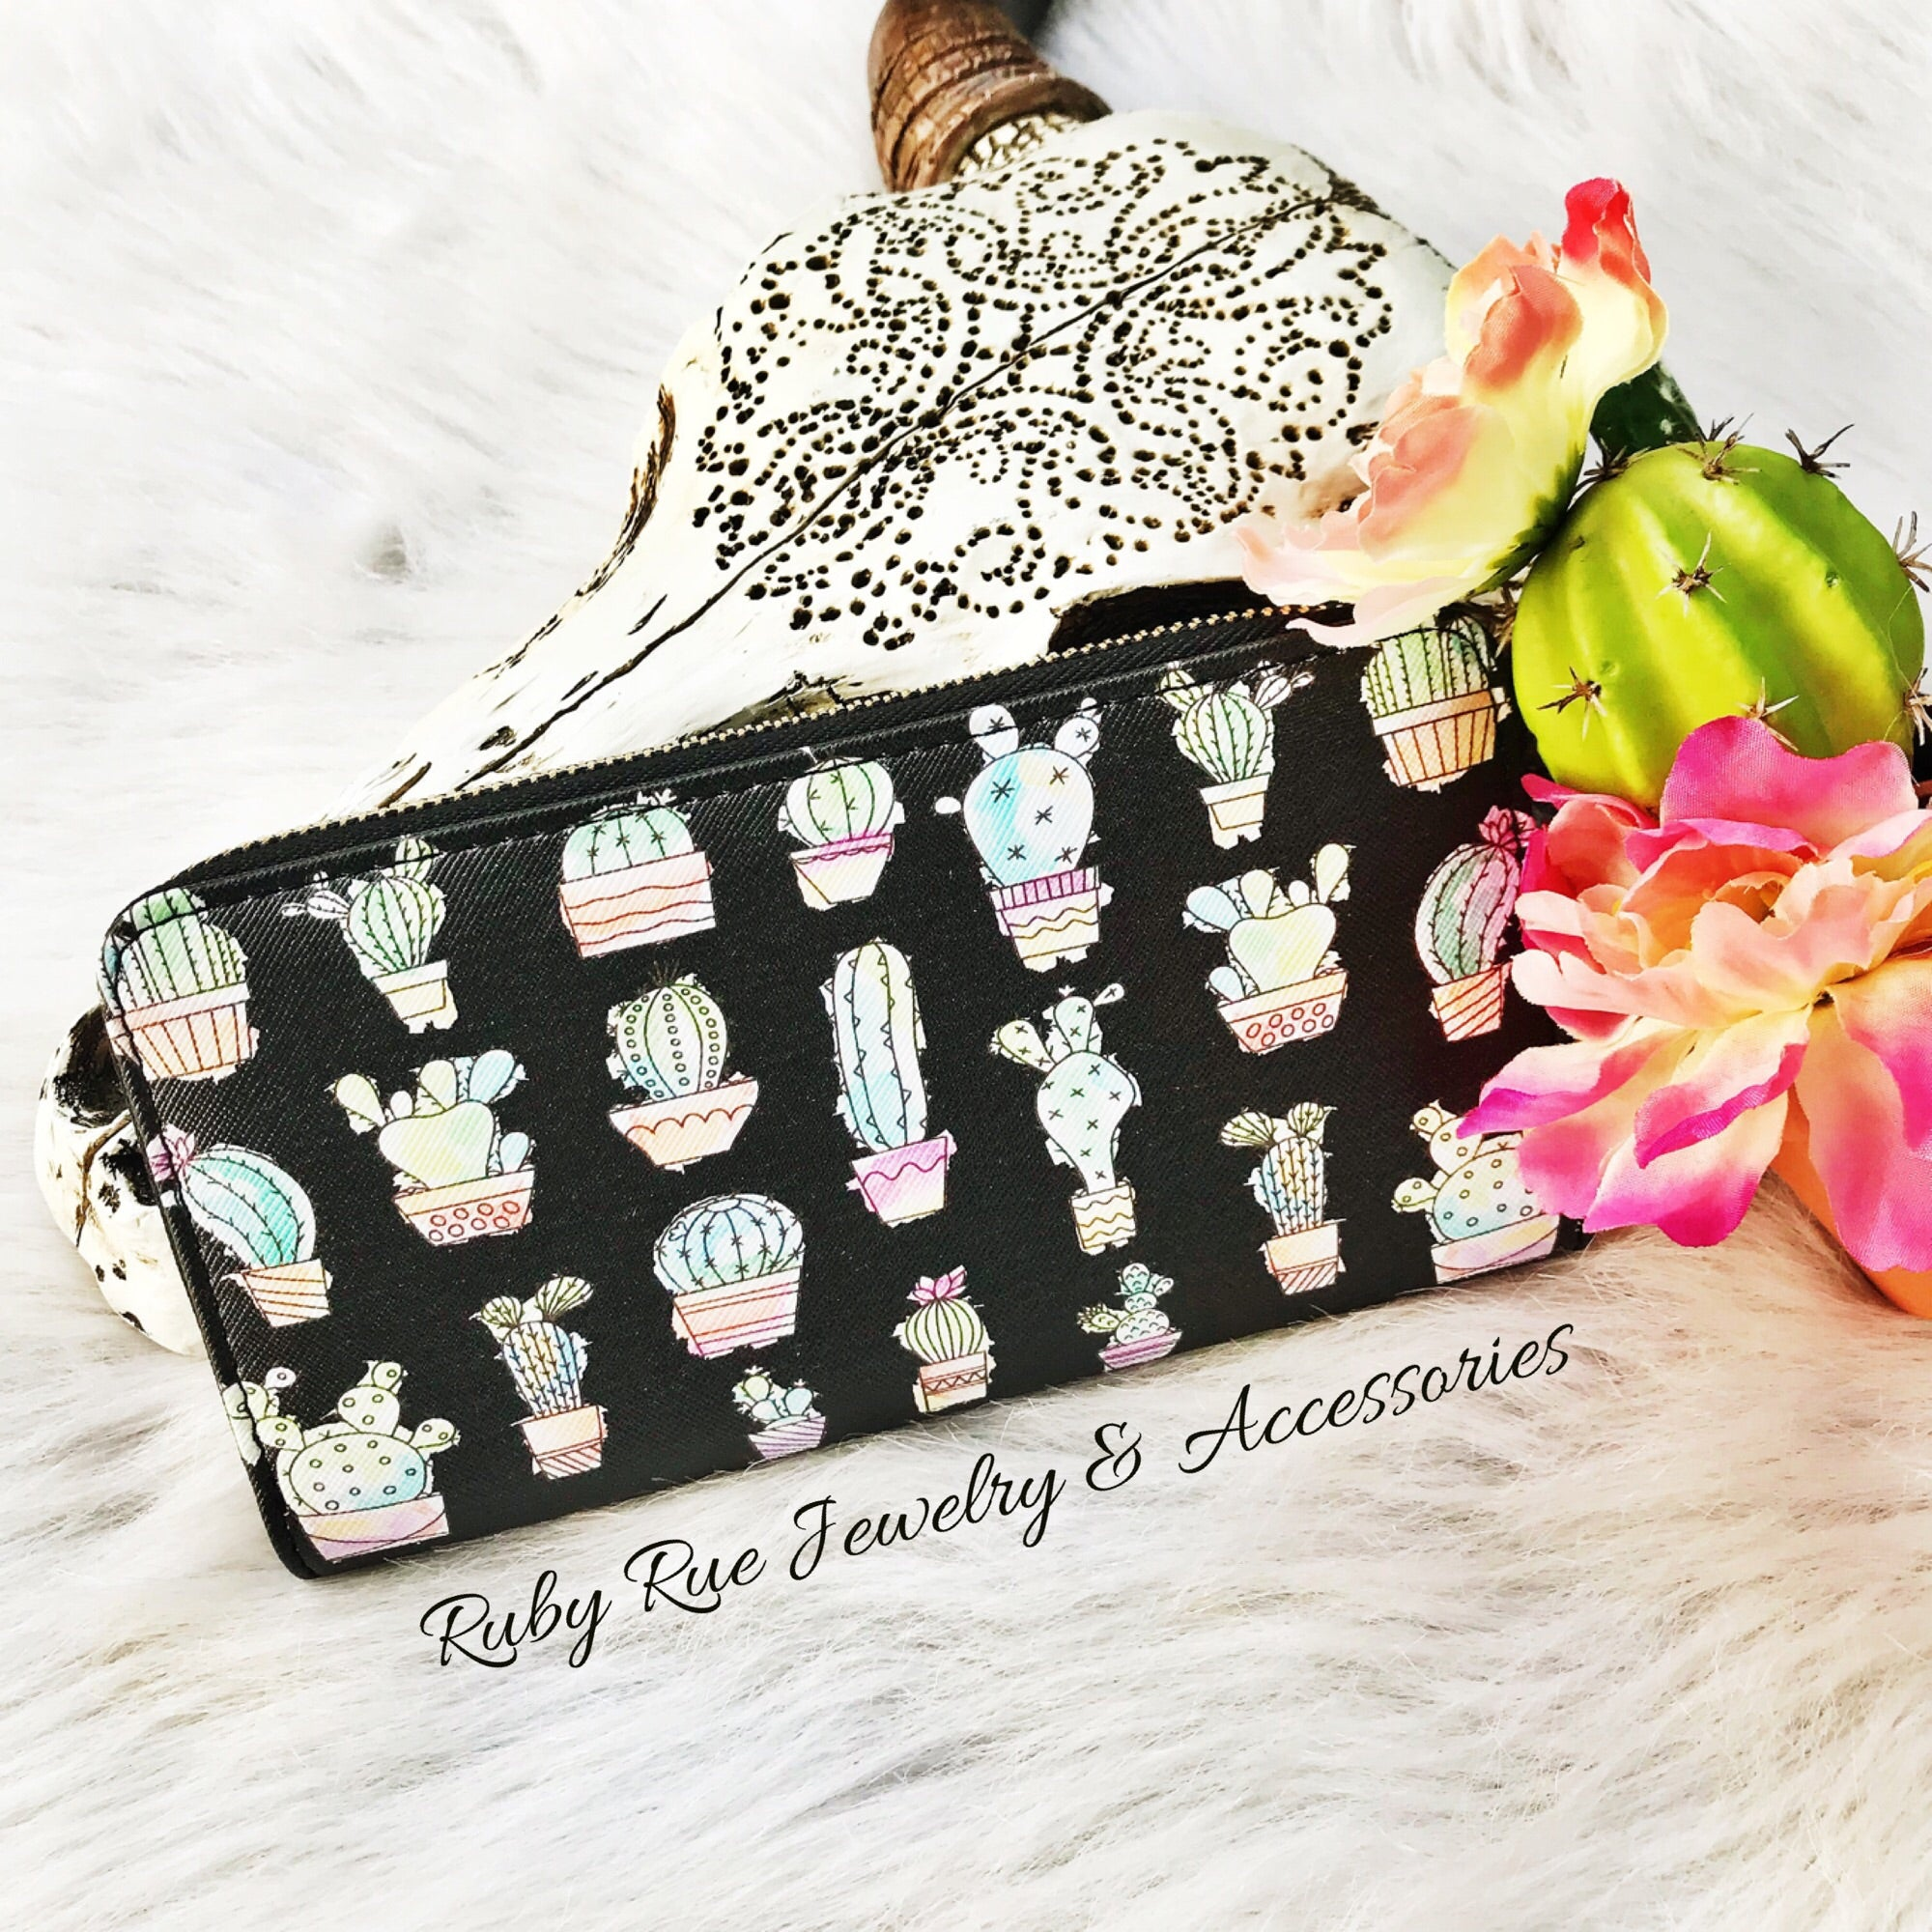 Black Cactus Wallet - Ruby Rue Jewelry & Accessories